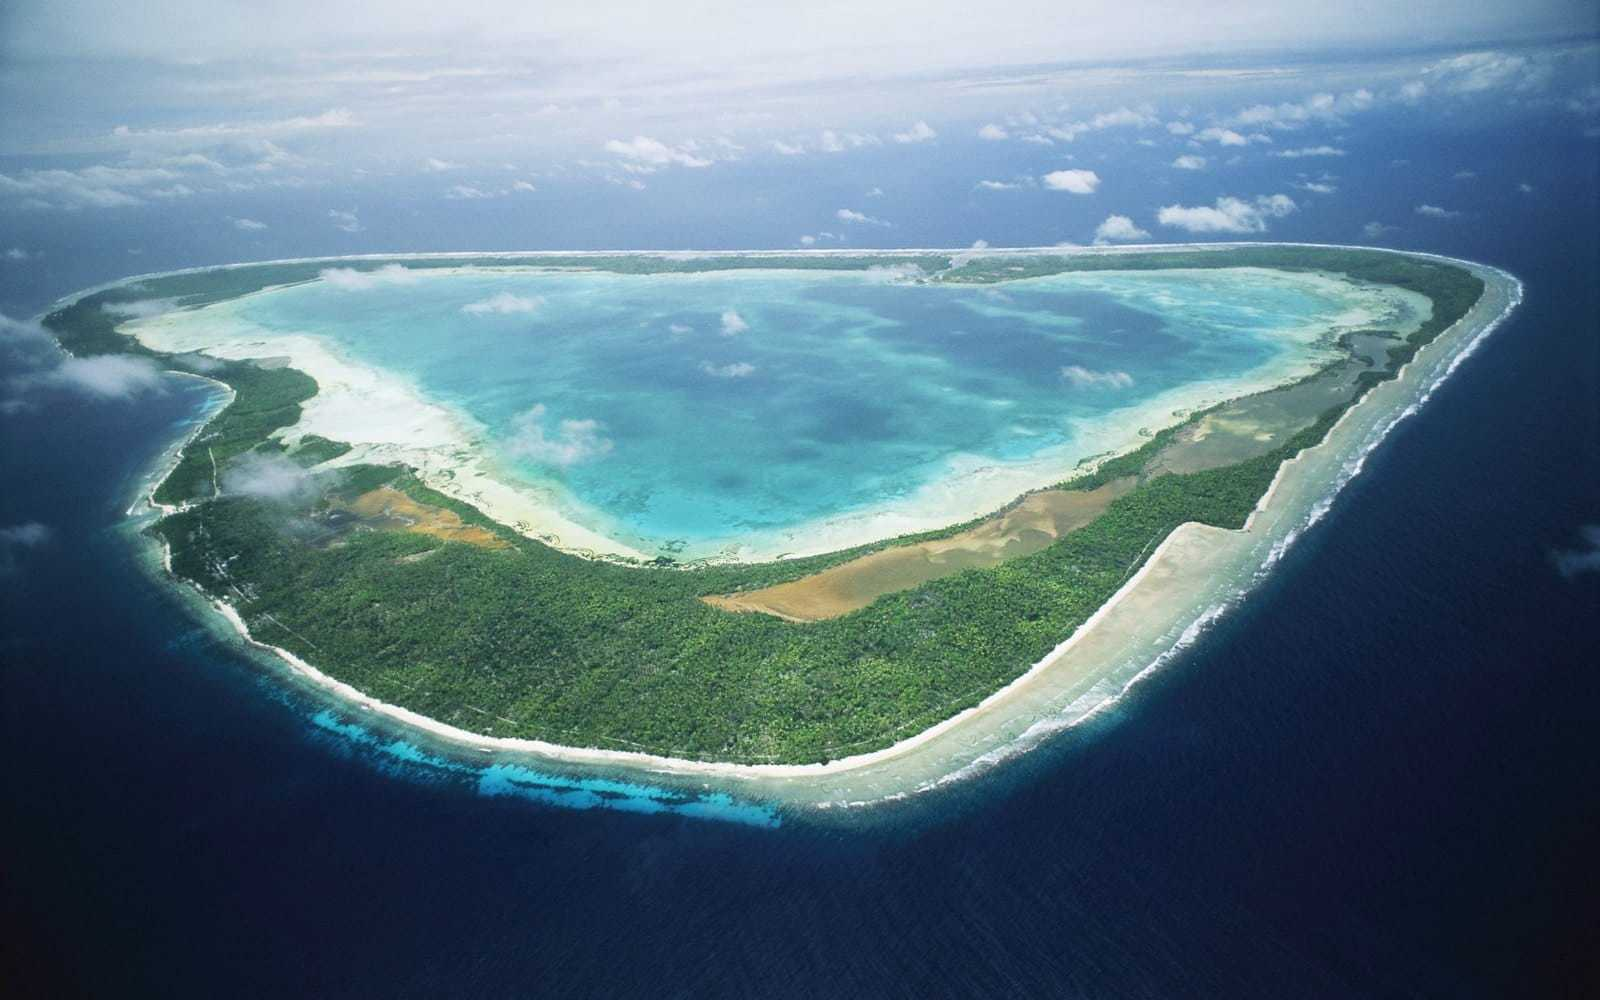 Gilbert Islands Kiribati